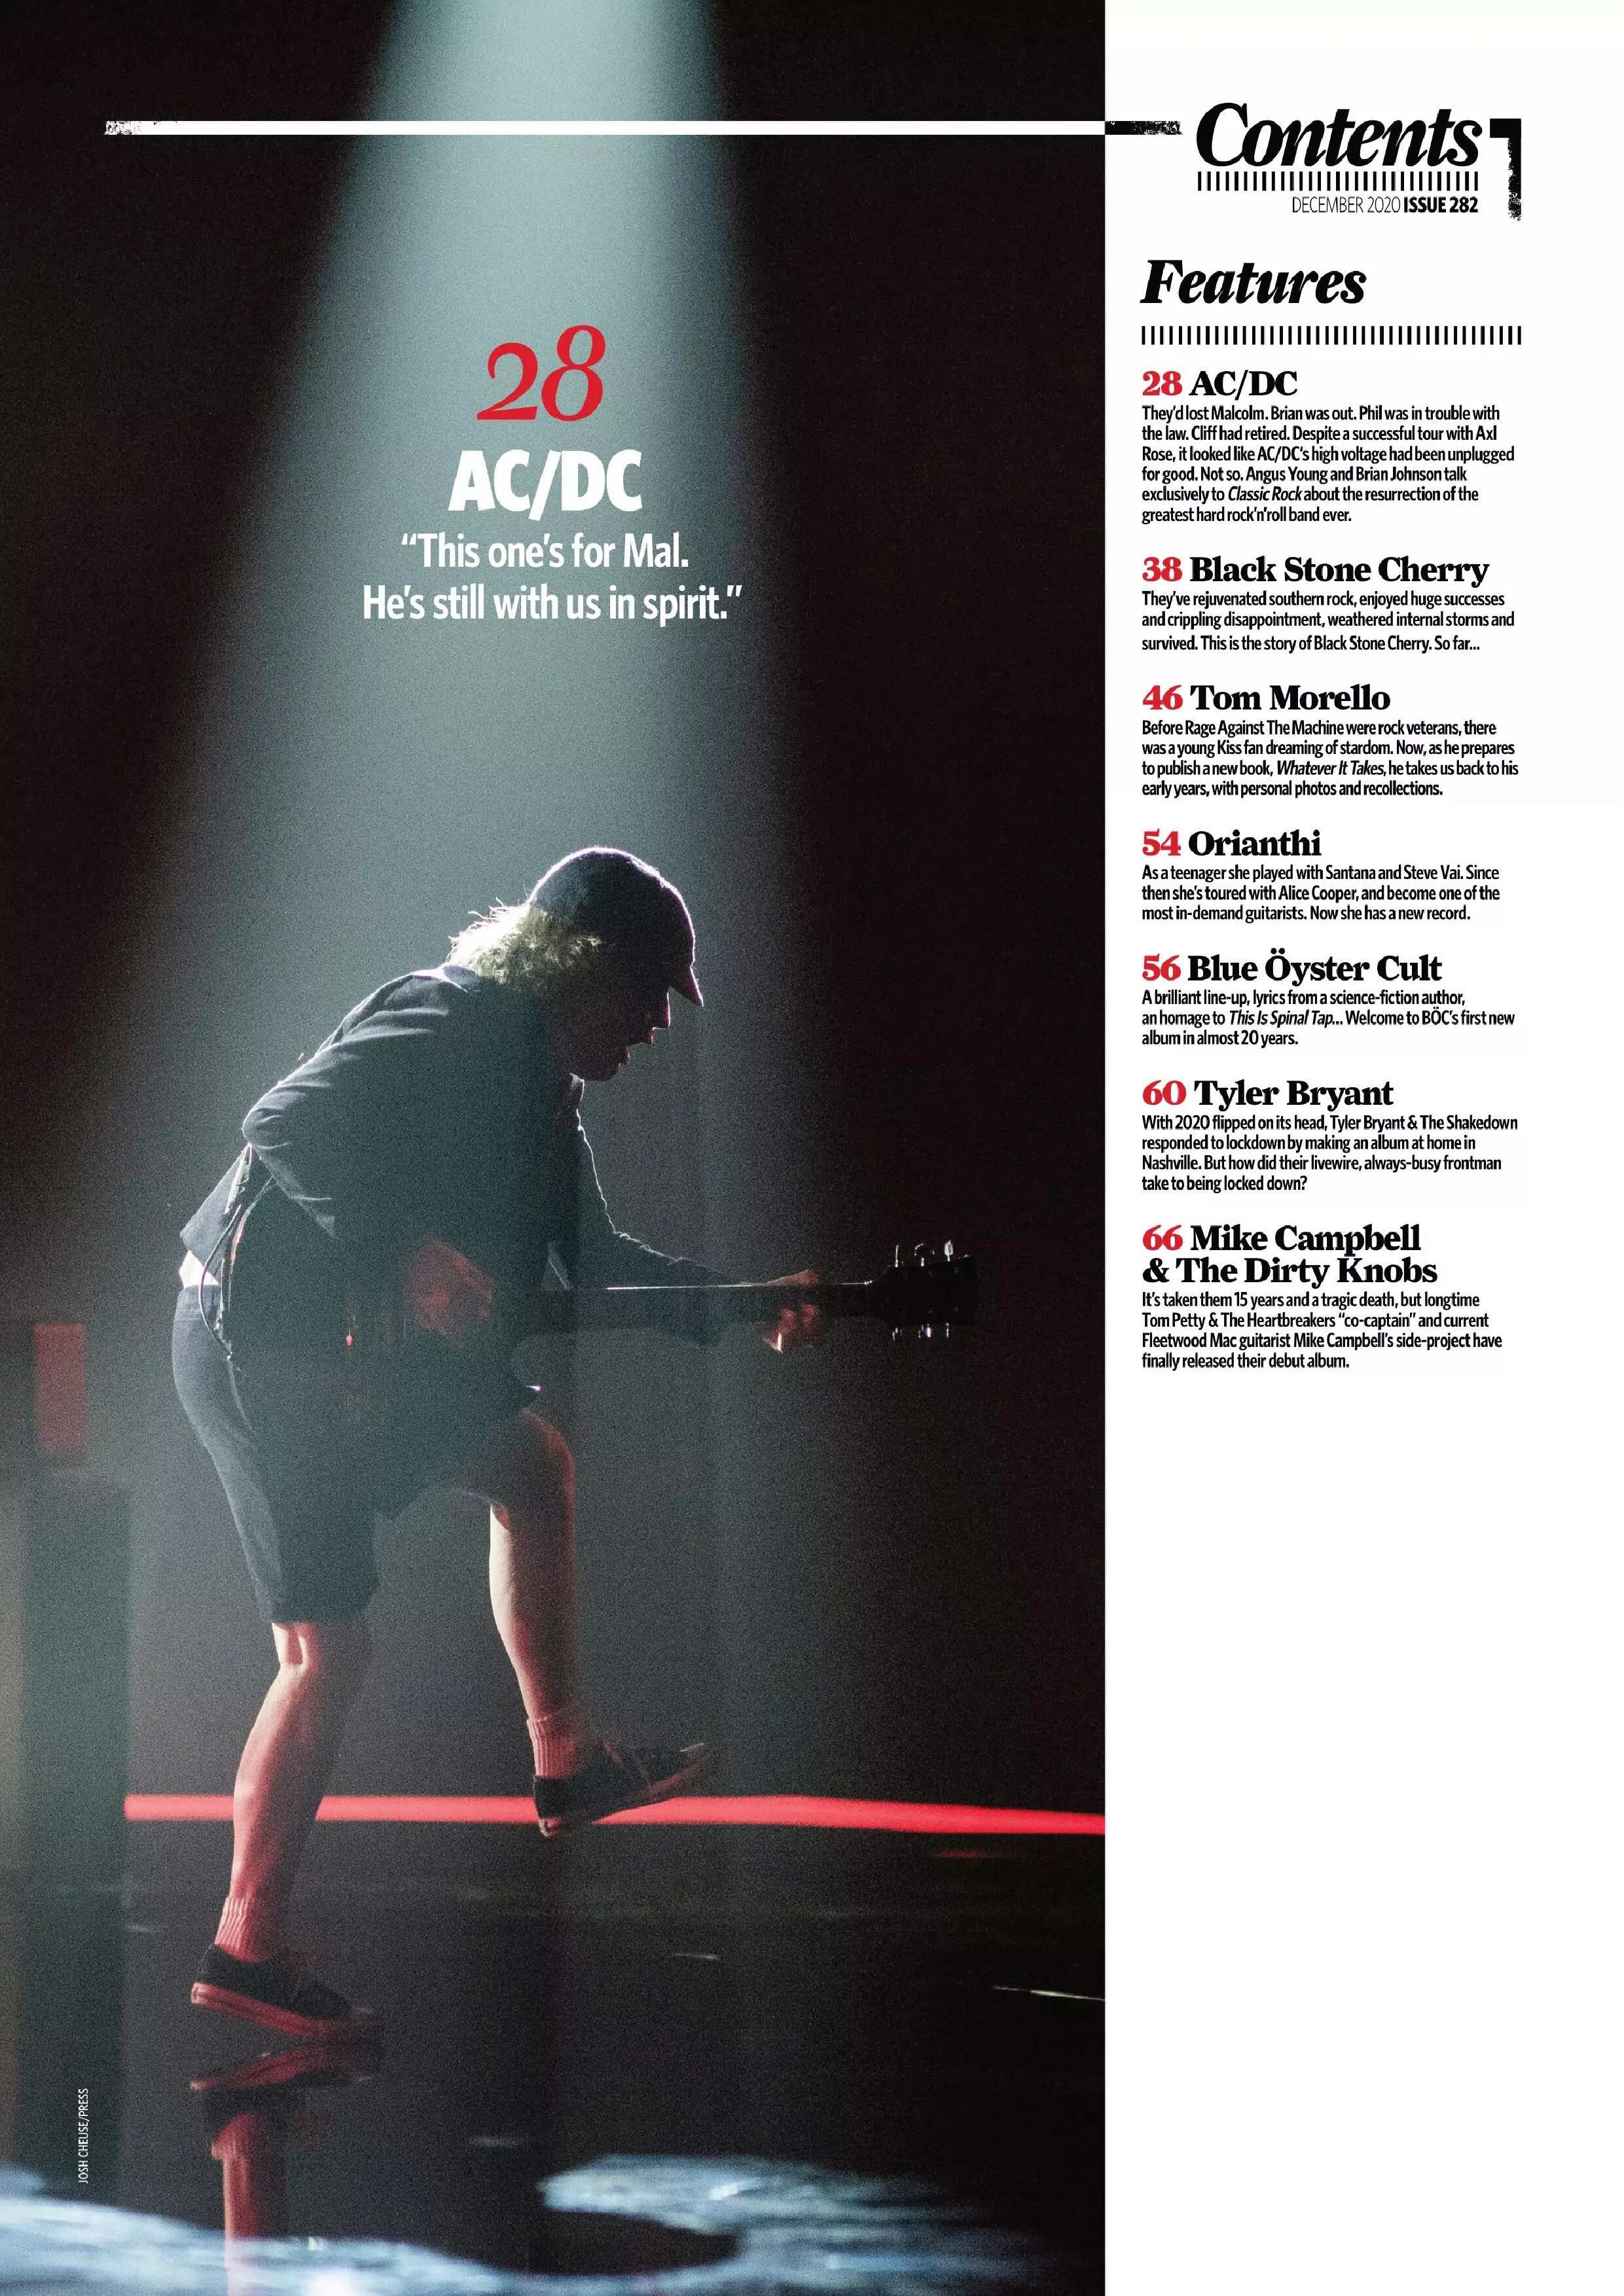 ACDC Power Up (2020) Hard-Rock Australie - Page 3 Cl_ic_13